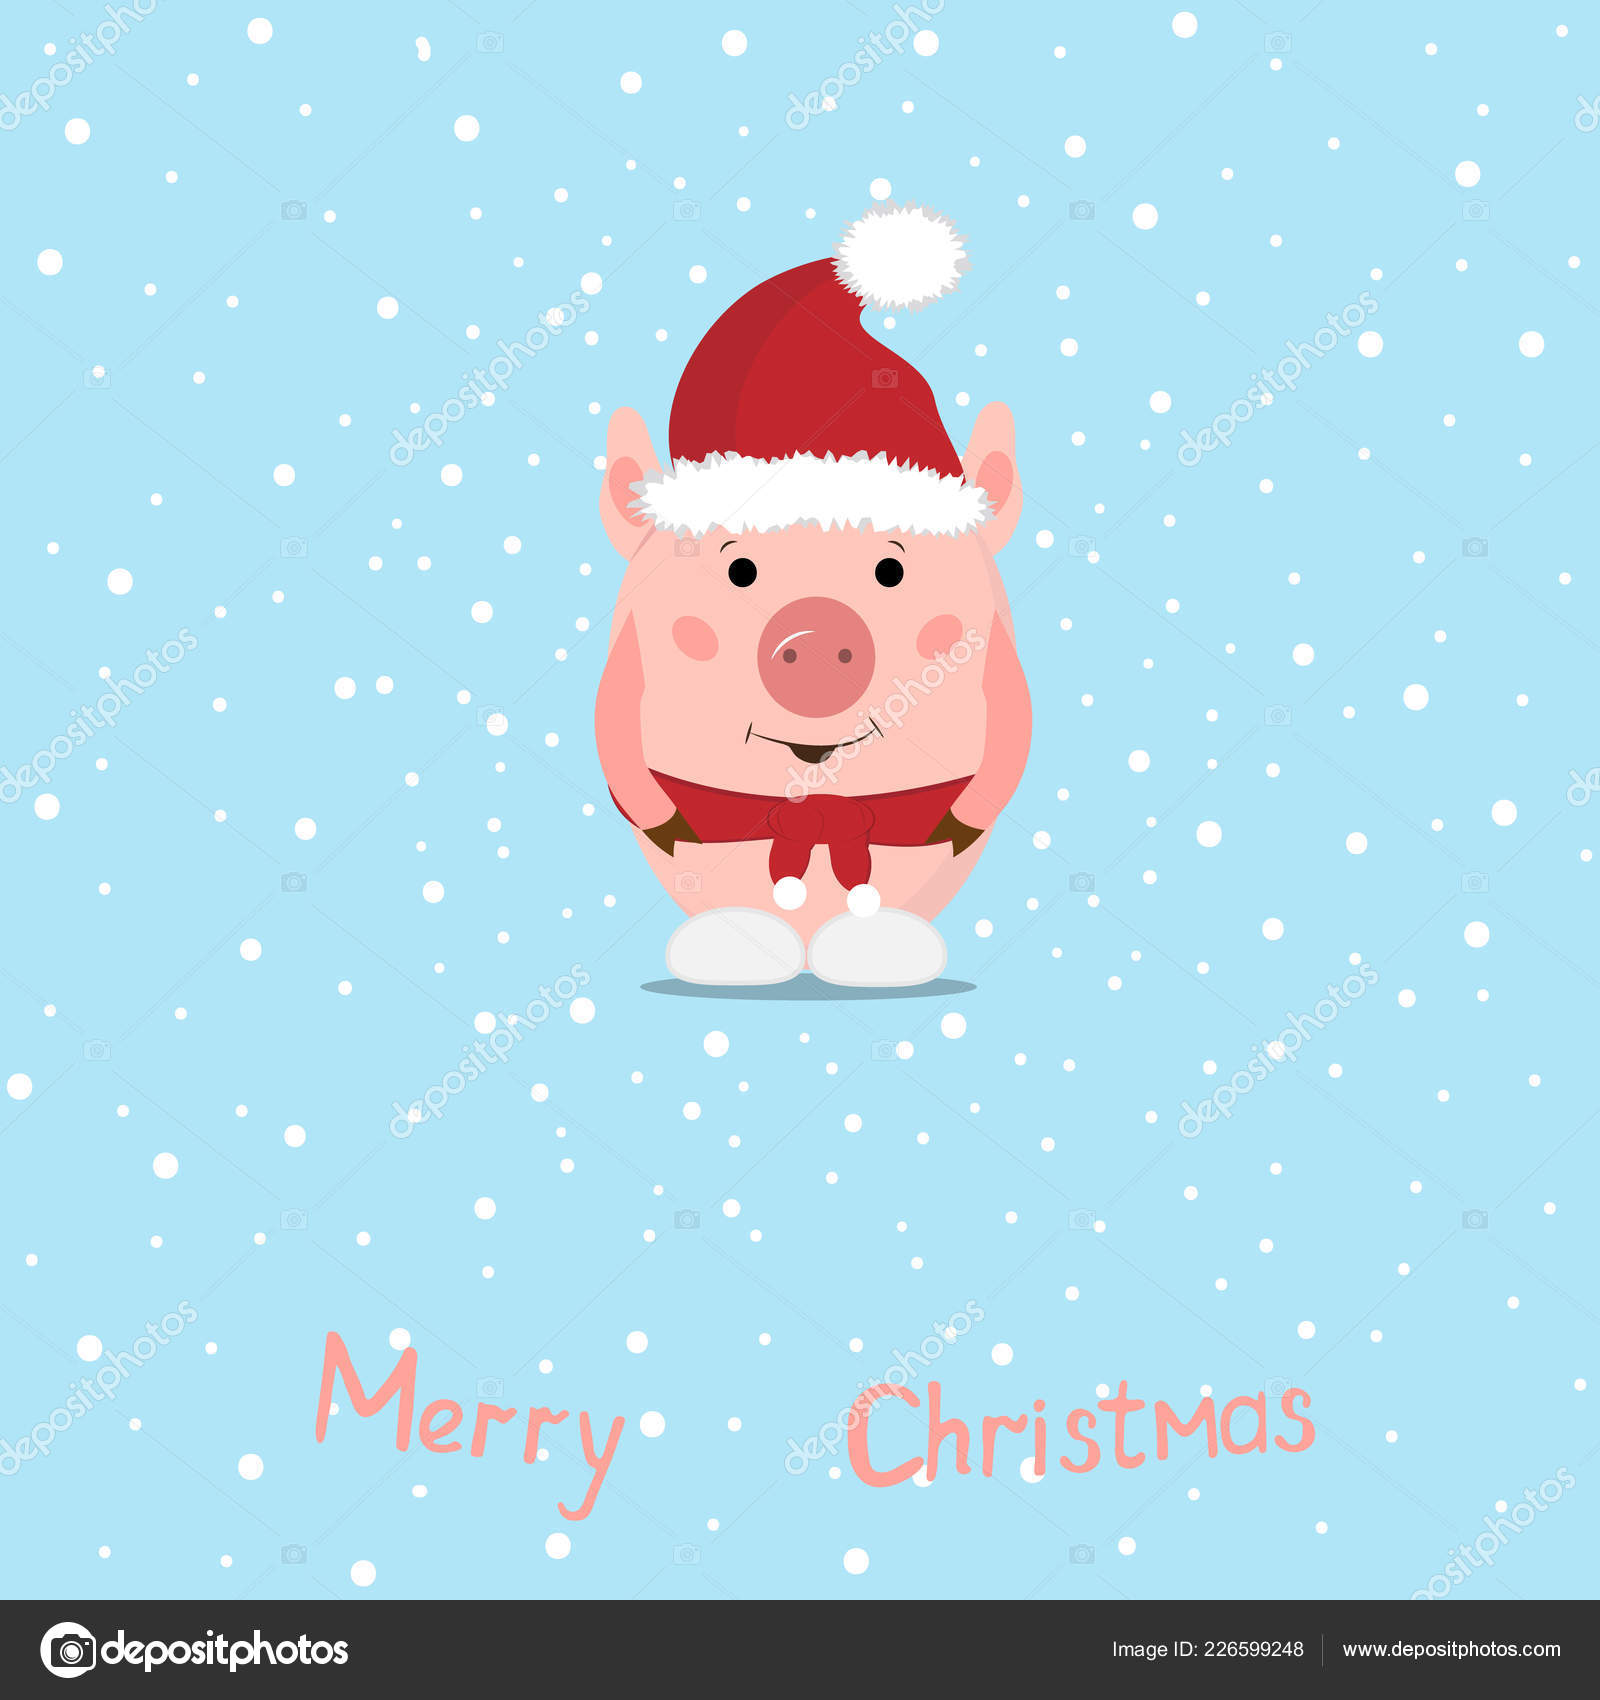 Funny Christmas Pigs Greeting Card Merry Christmas New Year Pig ...